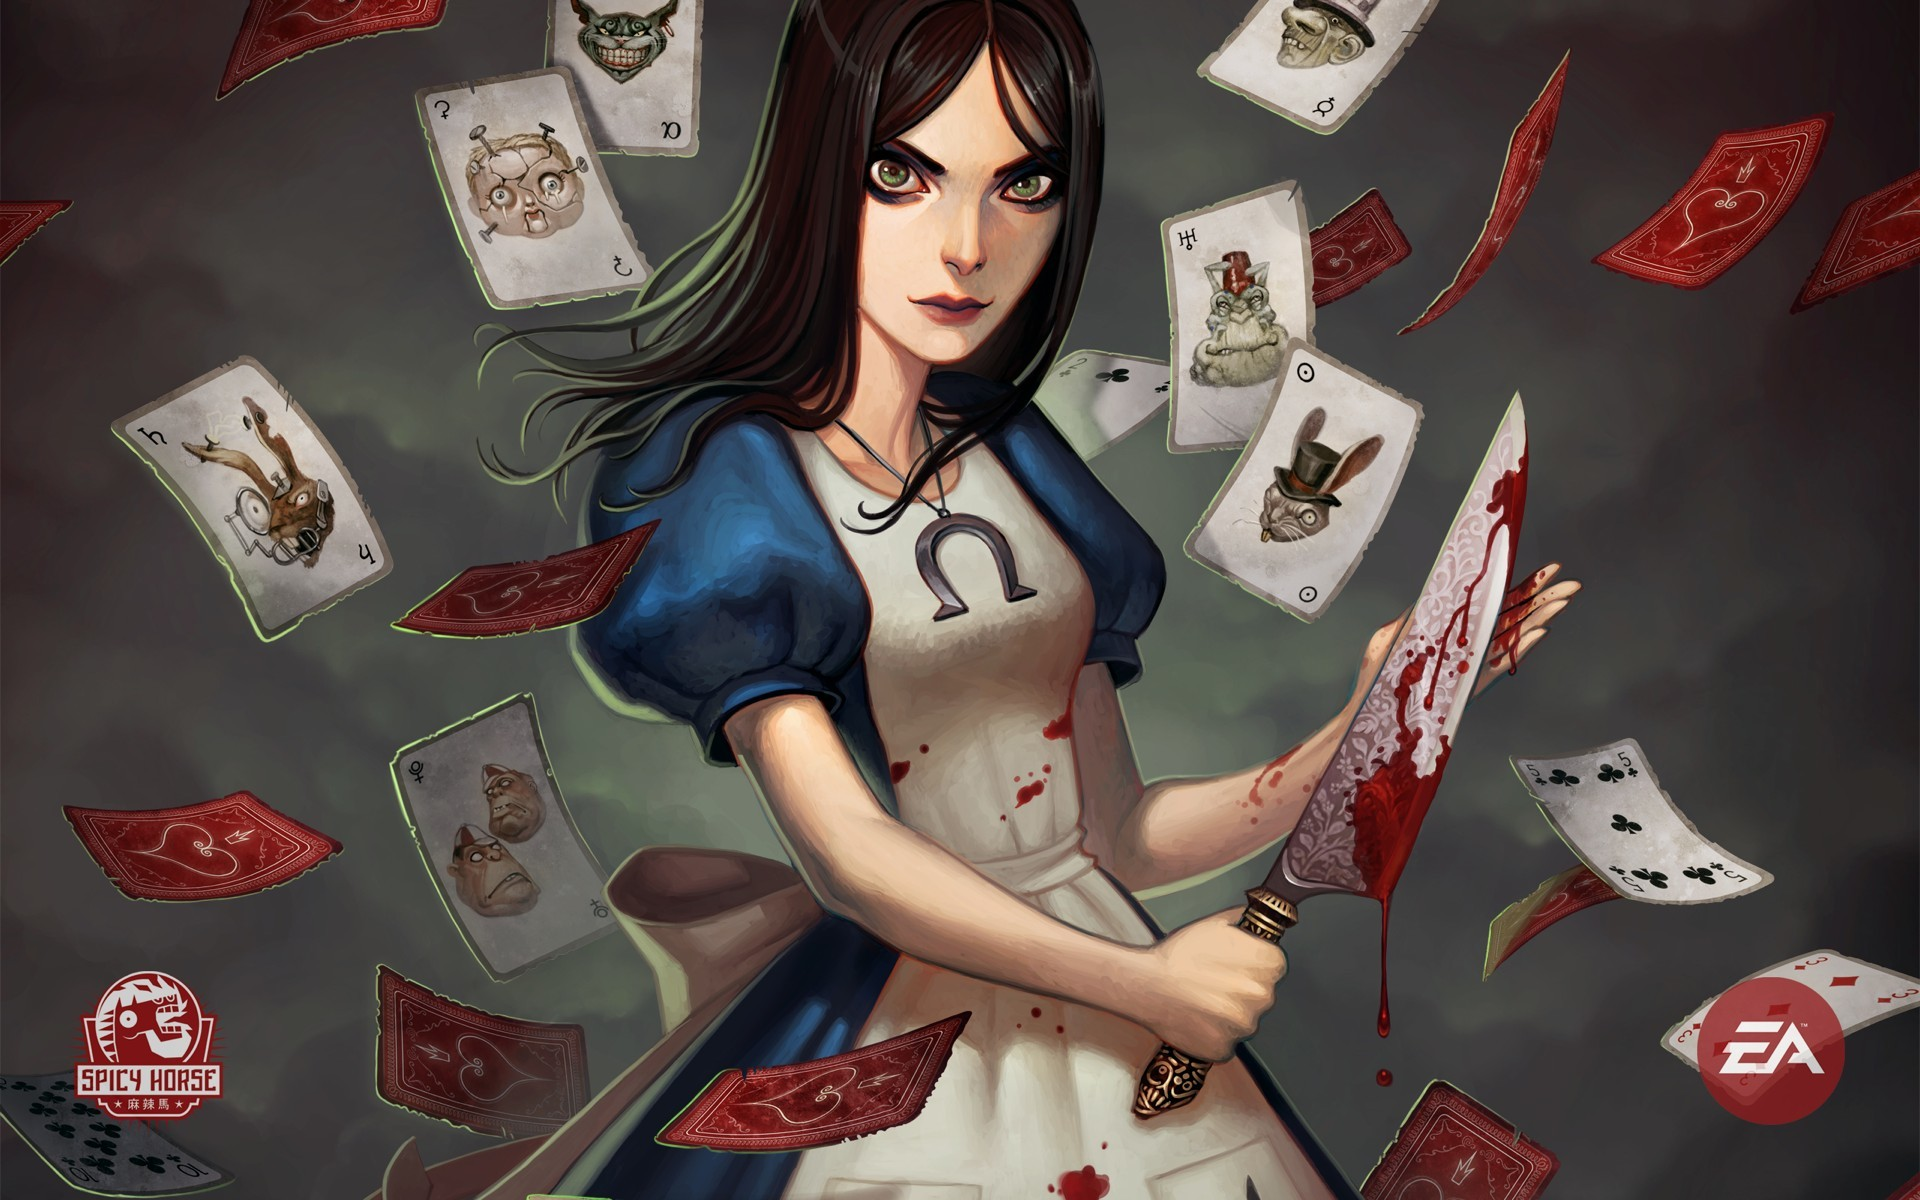 Yogen yogensia alice madness returns art